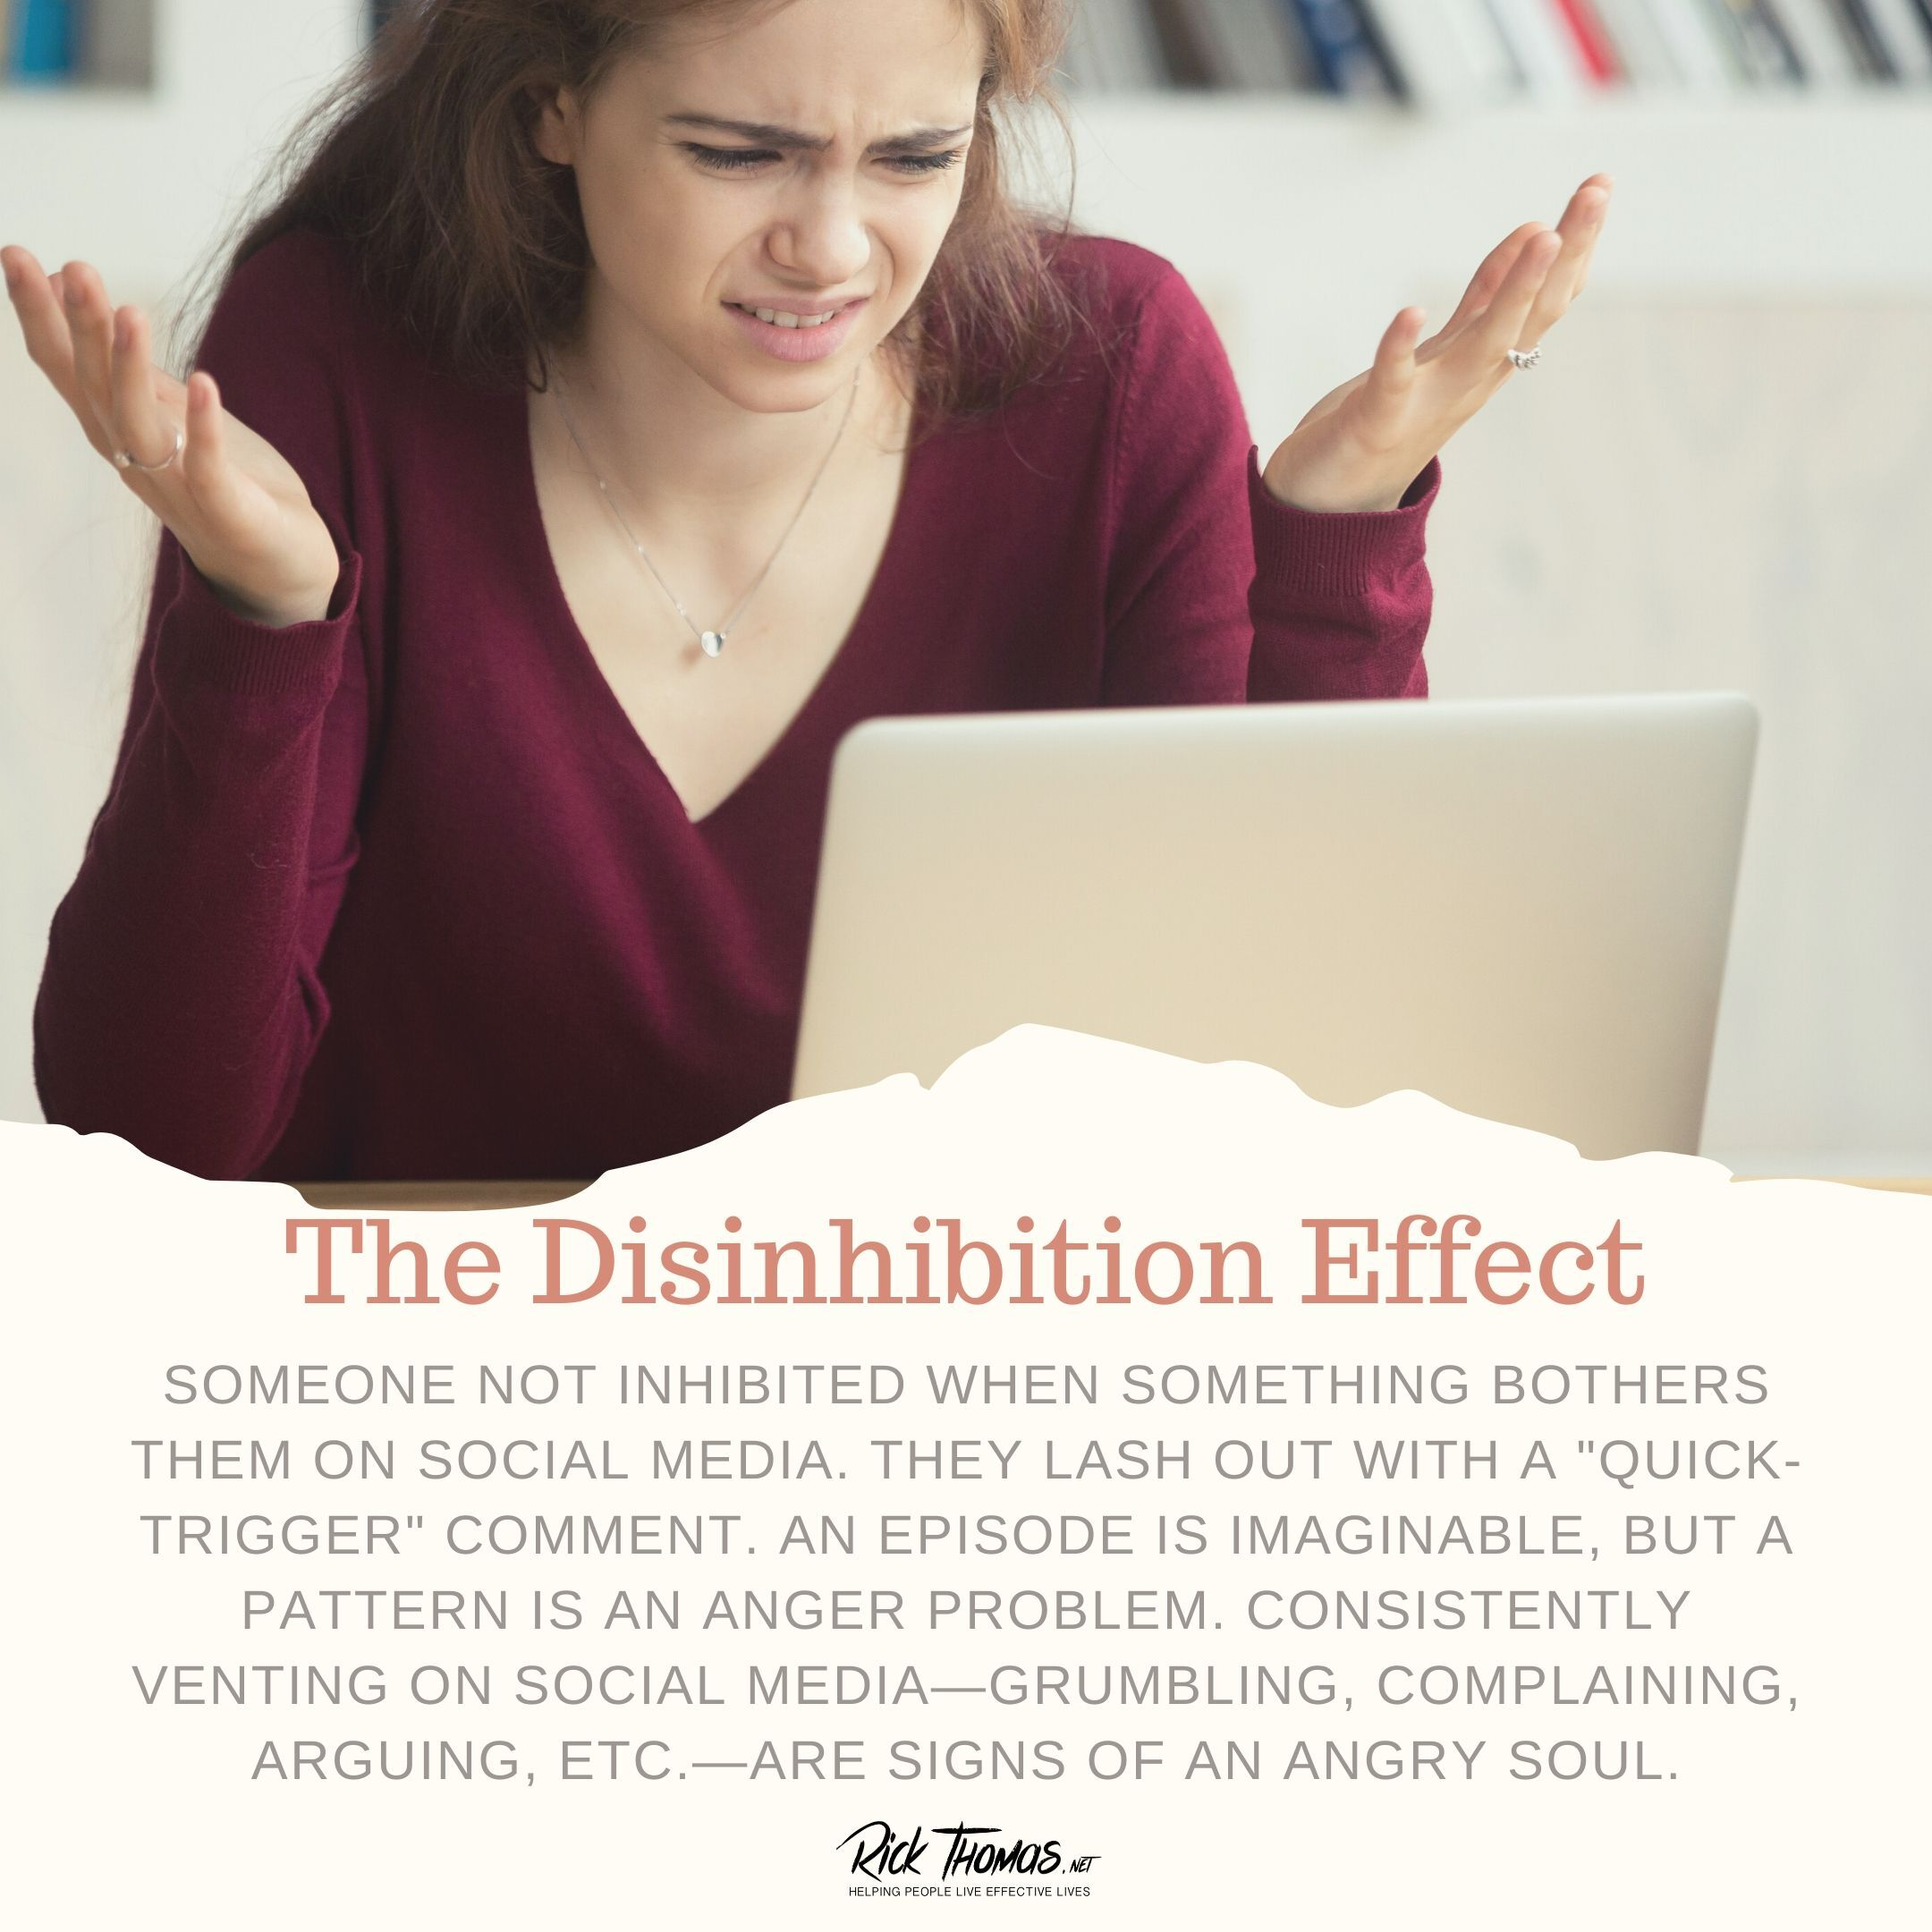 The Disinhibition Effect